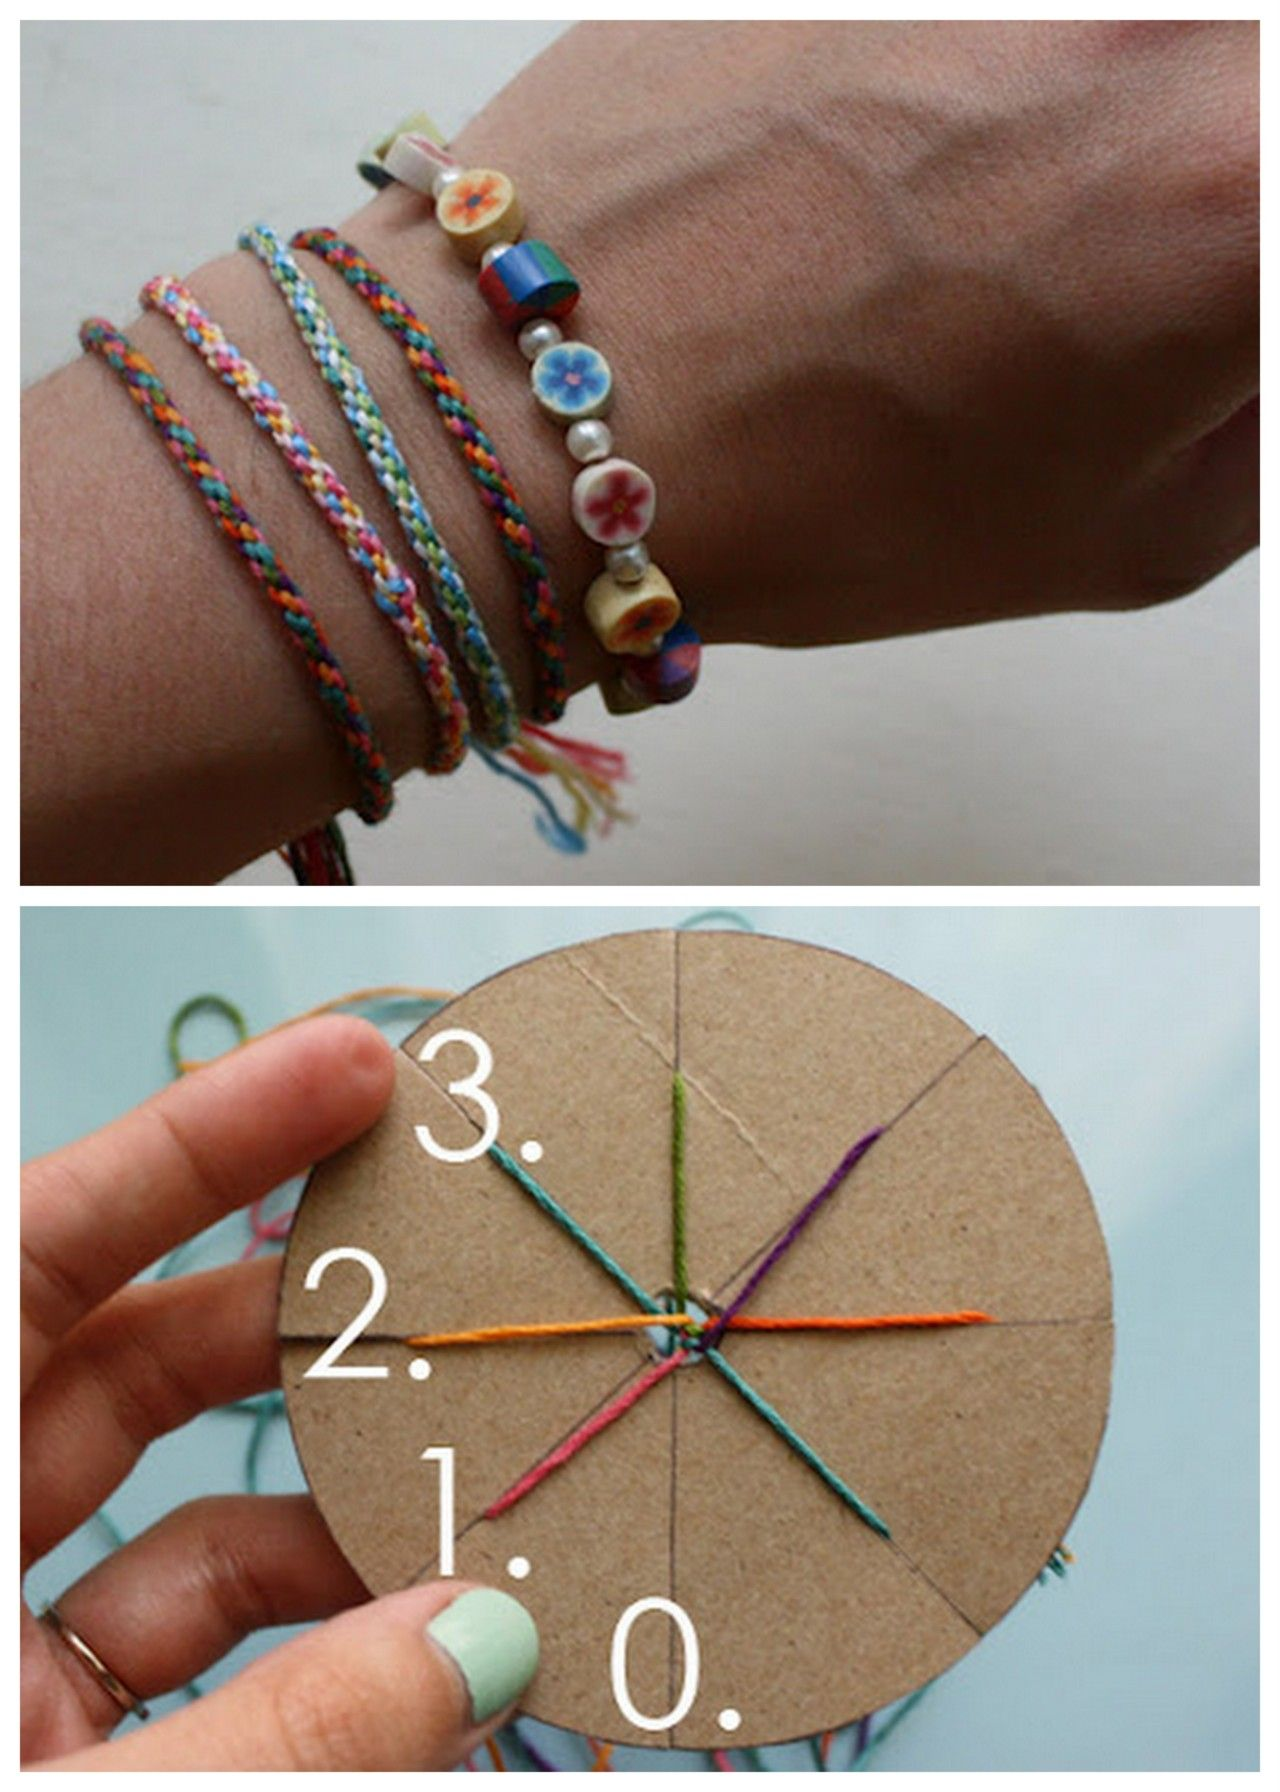 DIY Woven Friendship Bracelet Using a Circular Cardboard ...